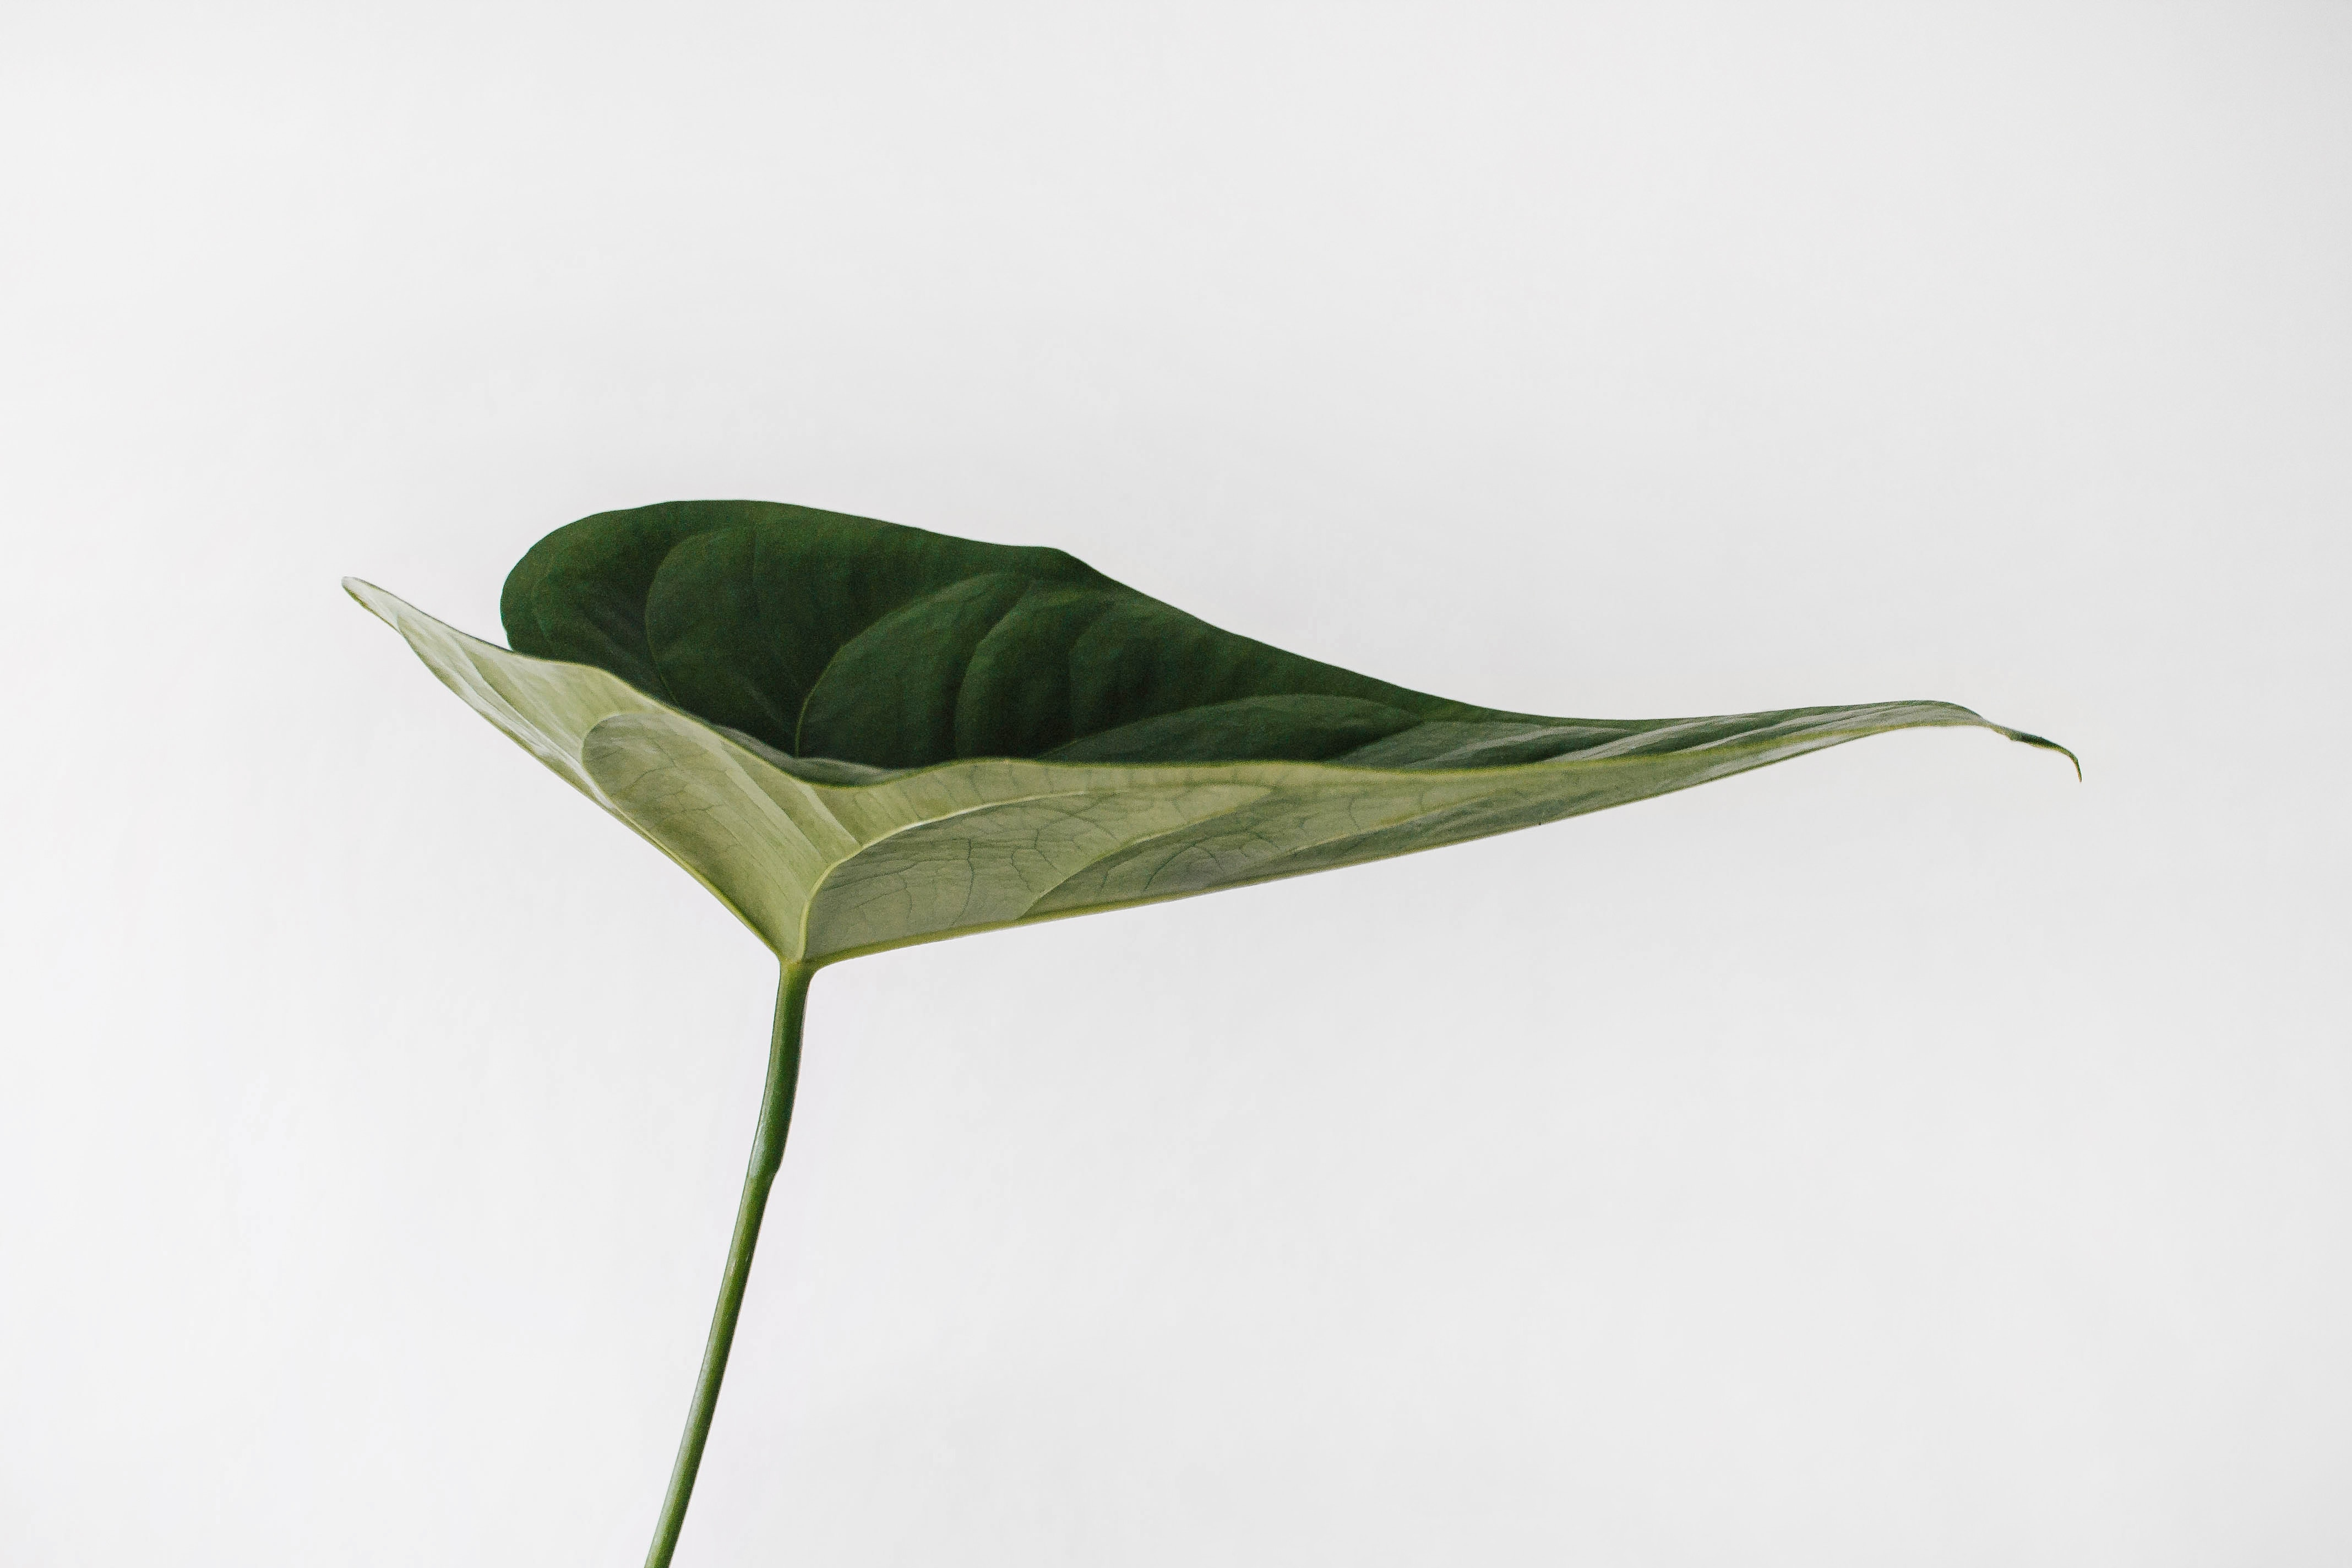 image of a single green leaf on a hite background